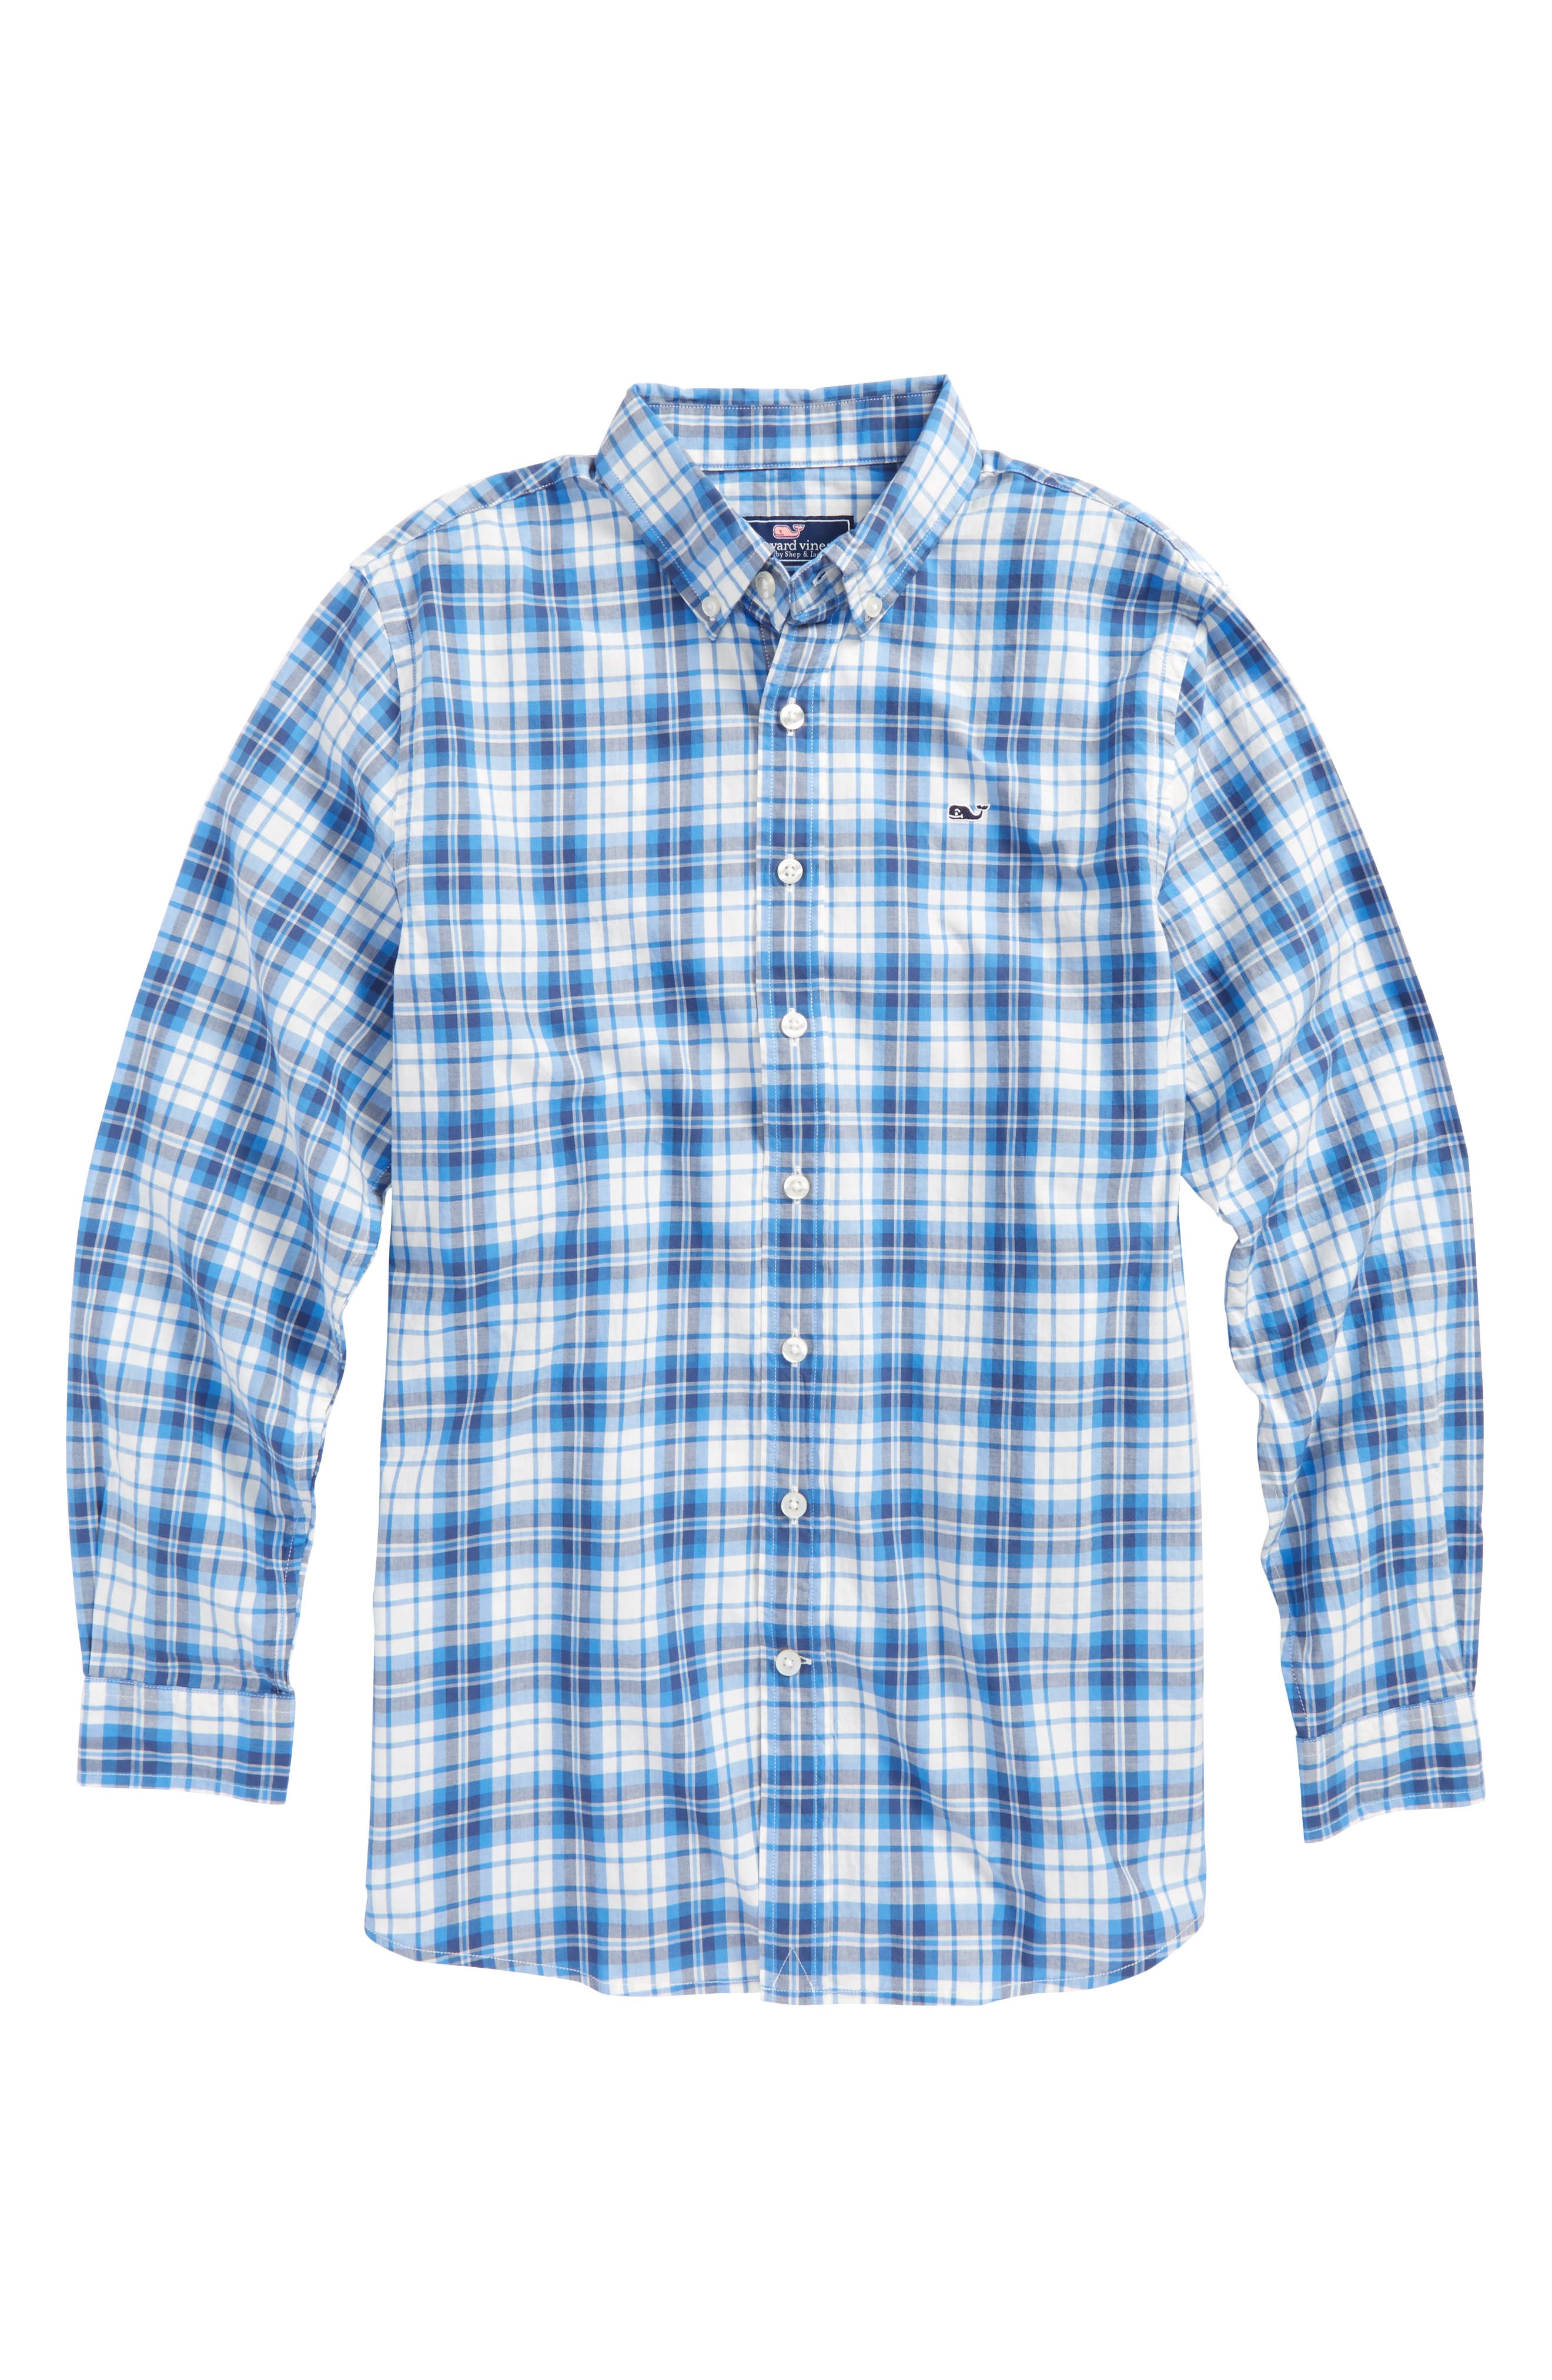 vineyard vines Shoretown Plaid Whale Shirt (Big Boys)